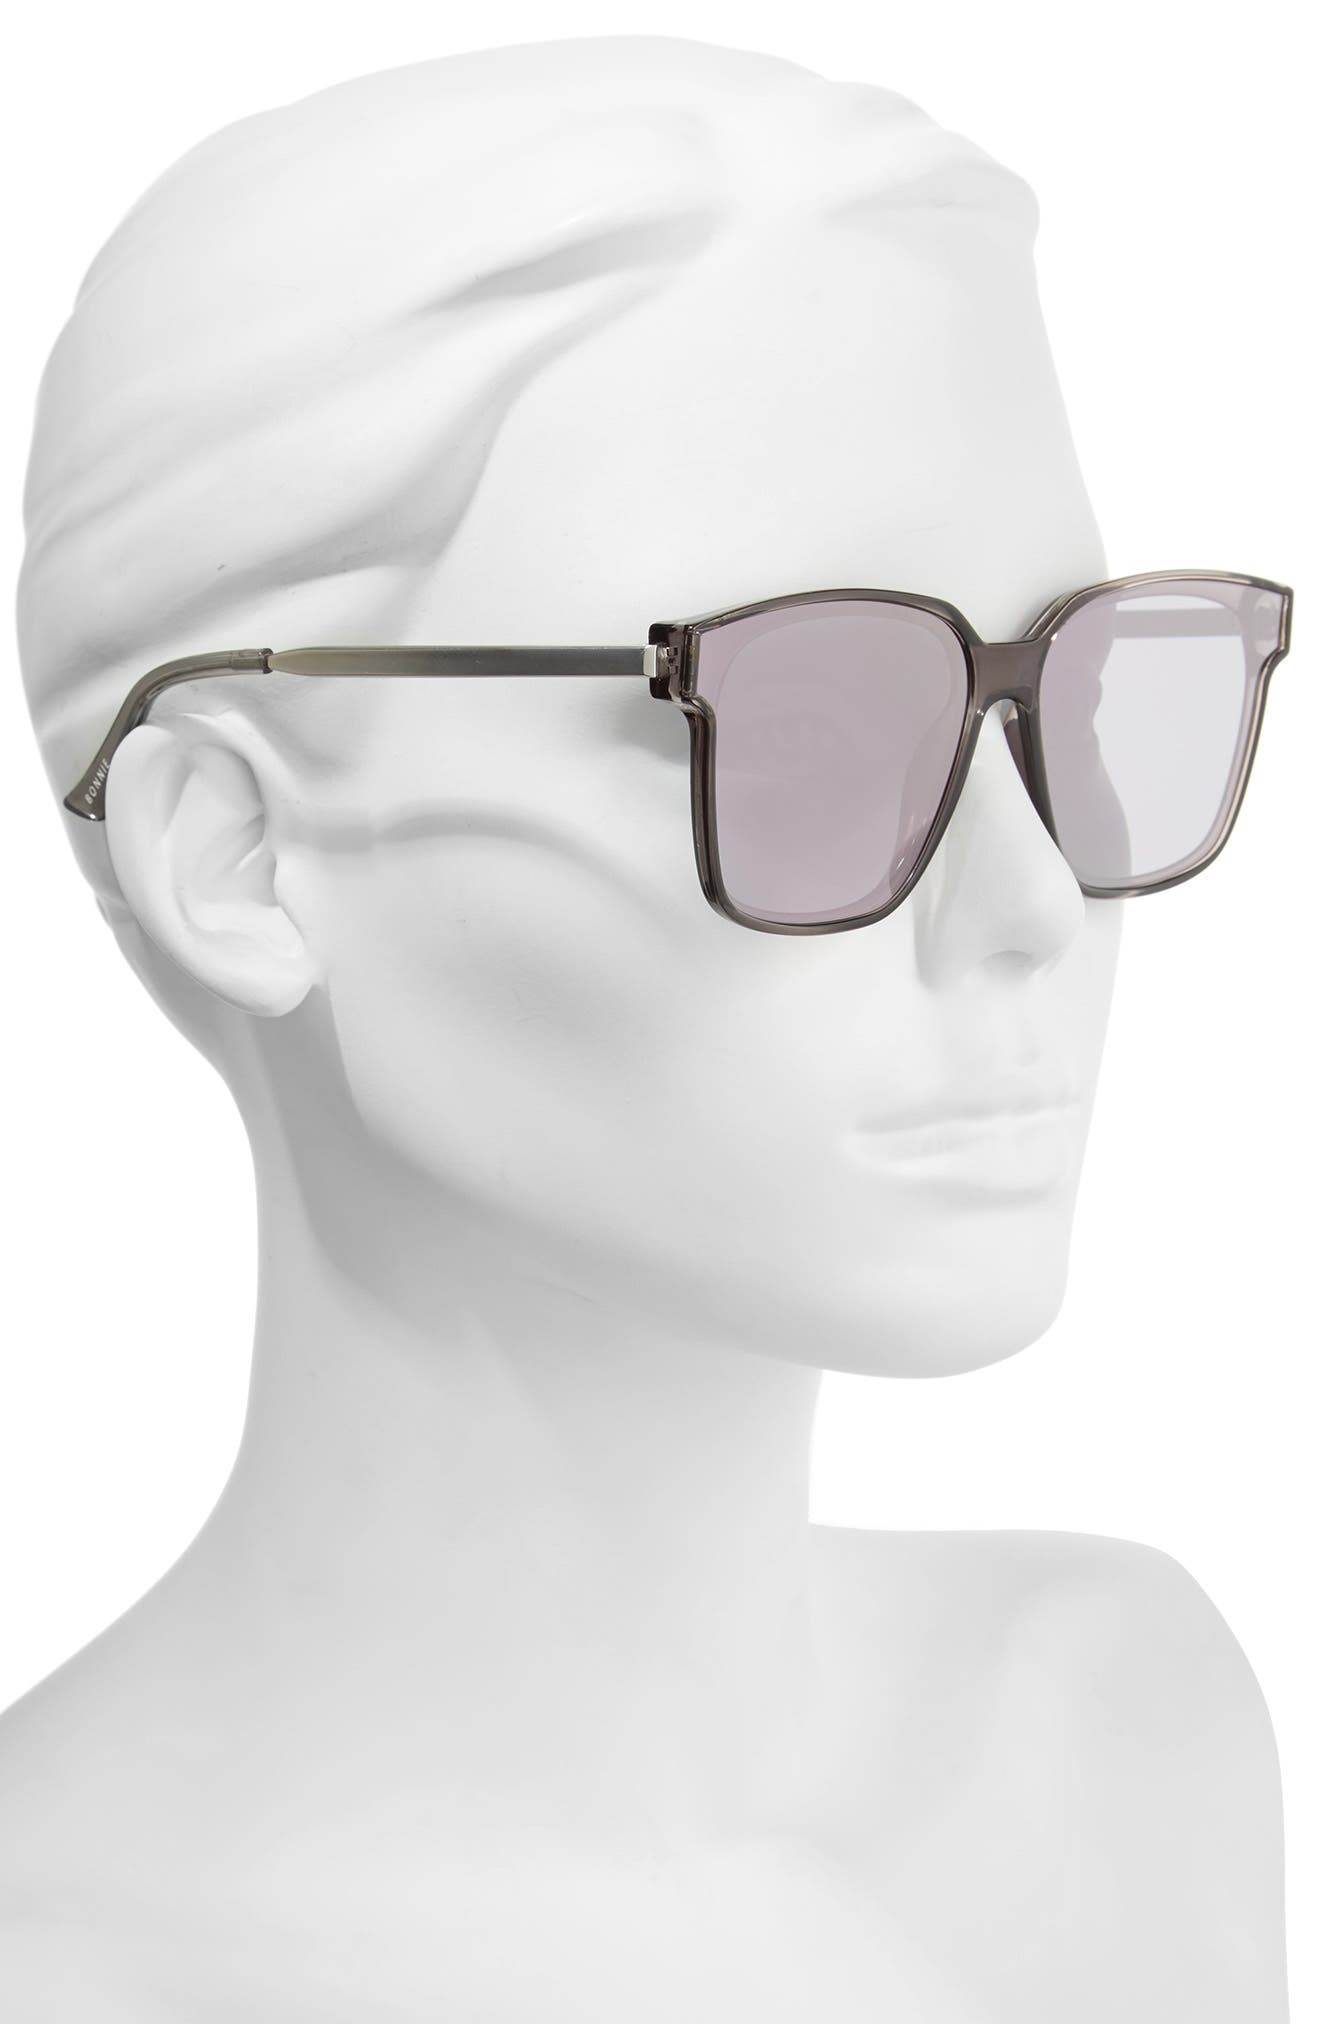 Alternate Image 2  - Bonnie Clyde Wall 62mm Square Mirror Lens Sunglasses